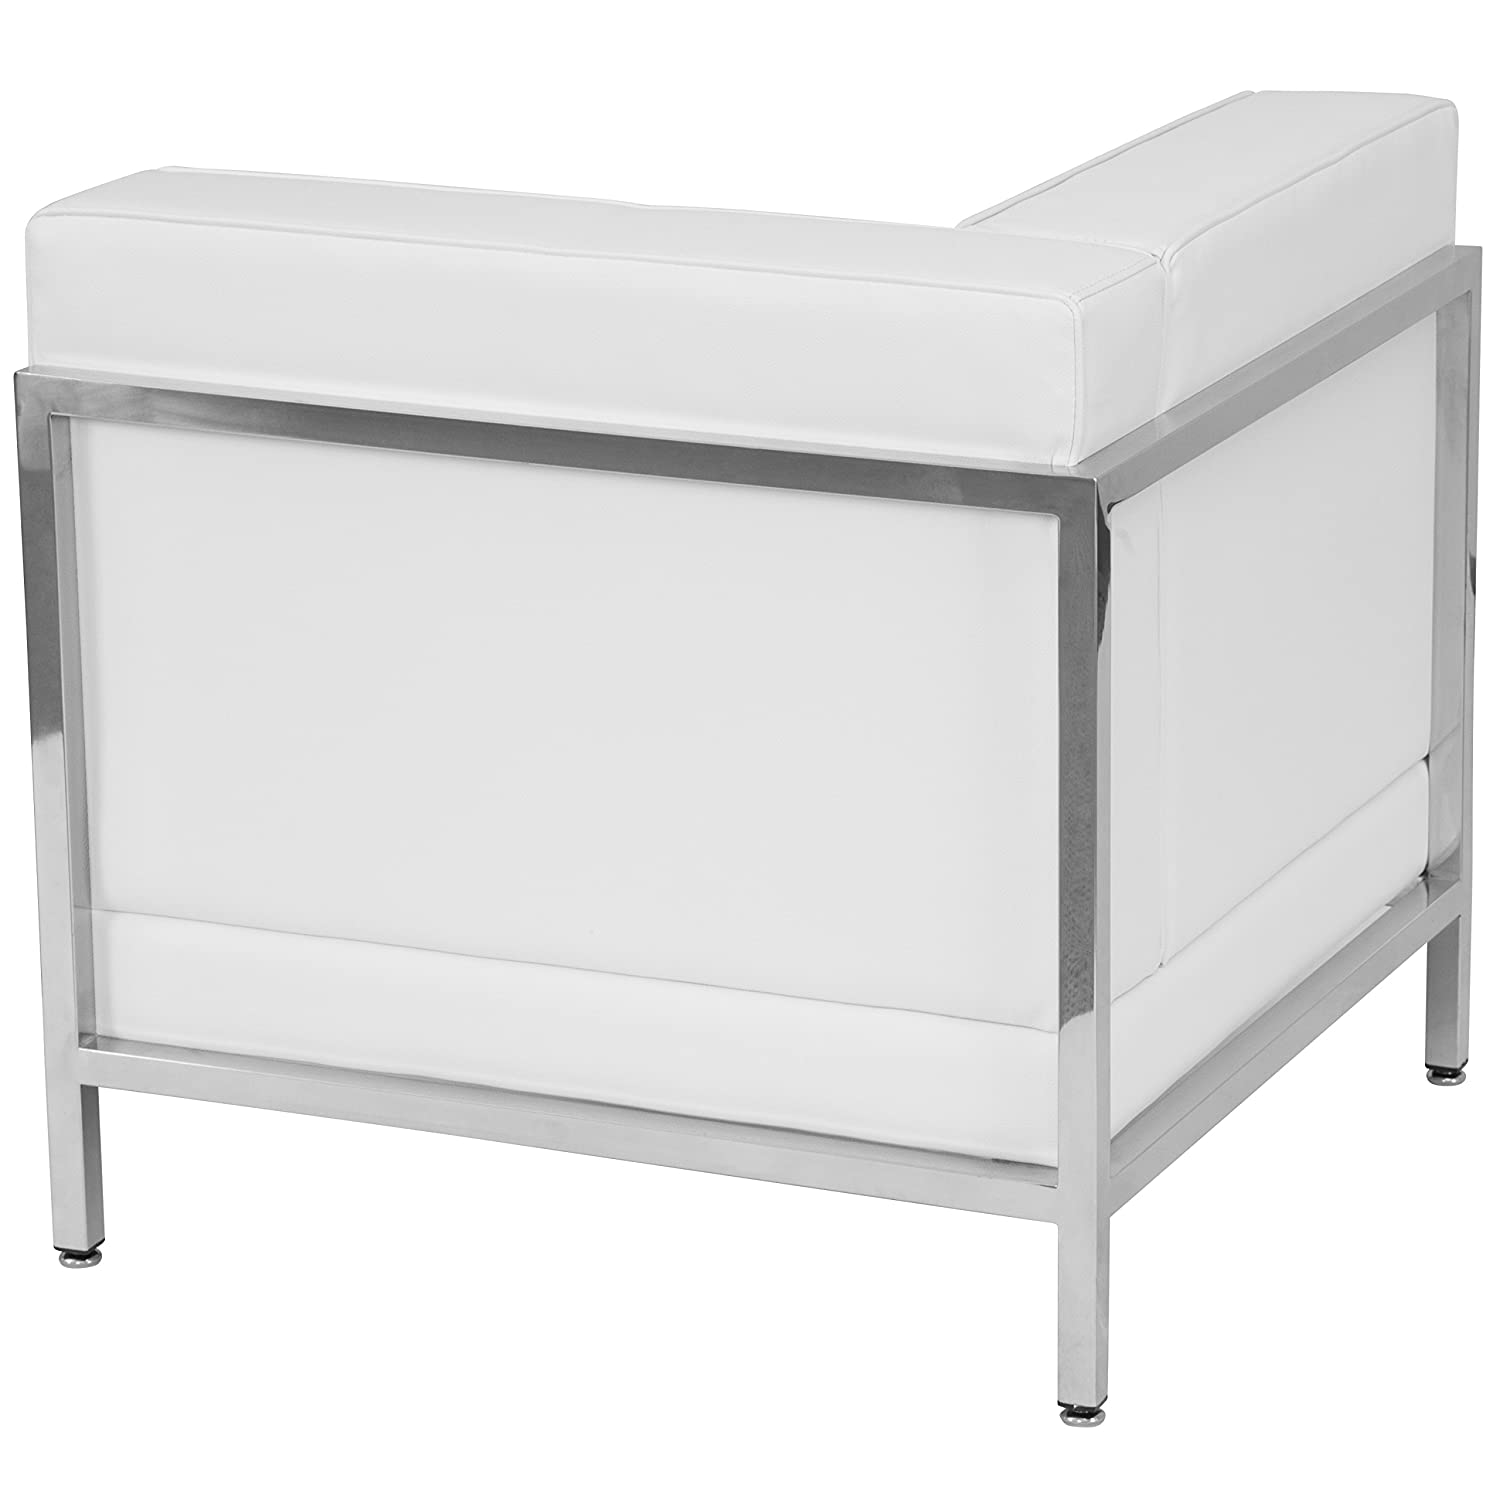 Flash Furniture HERCULES Imagination Series Contemporary Melrose White Leather Left Corner Chair with Encasing Frame